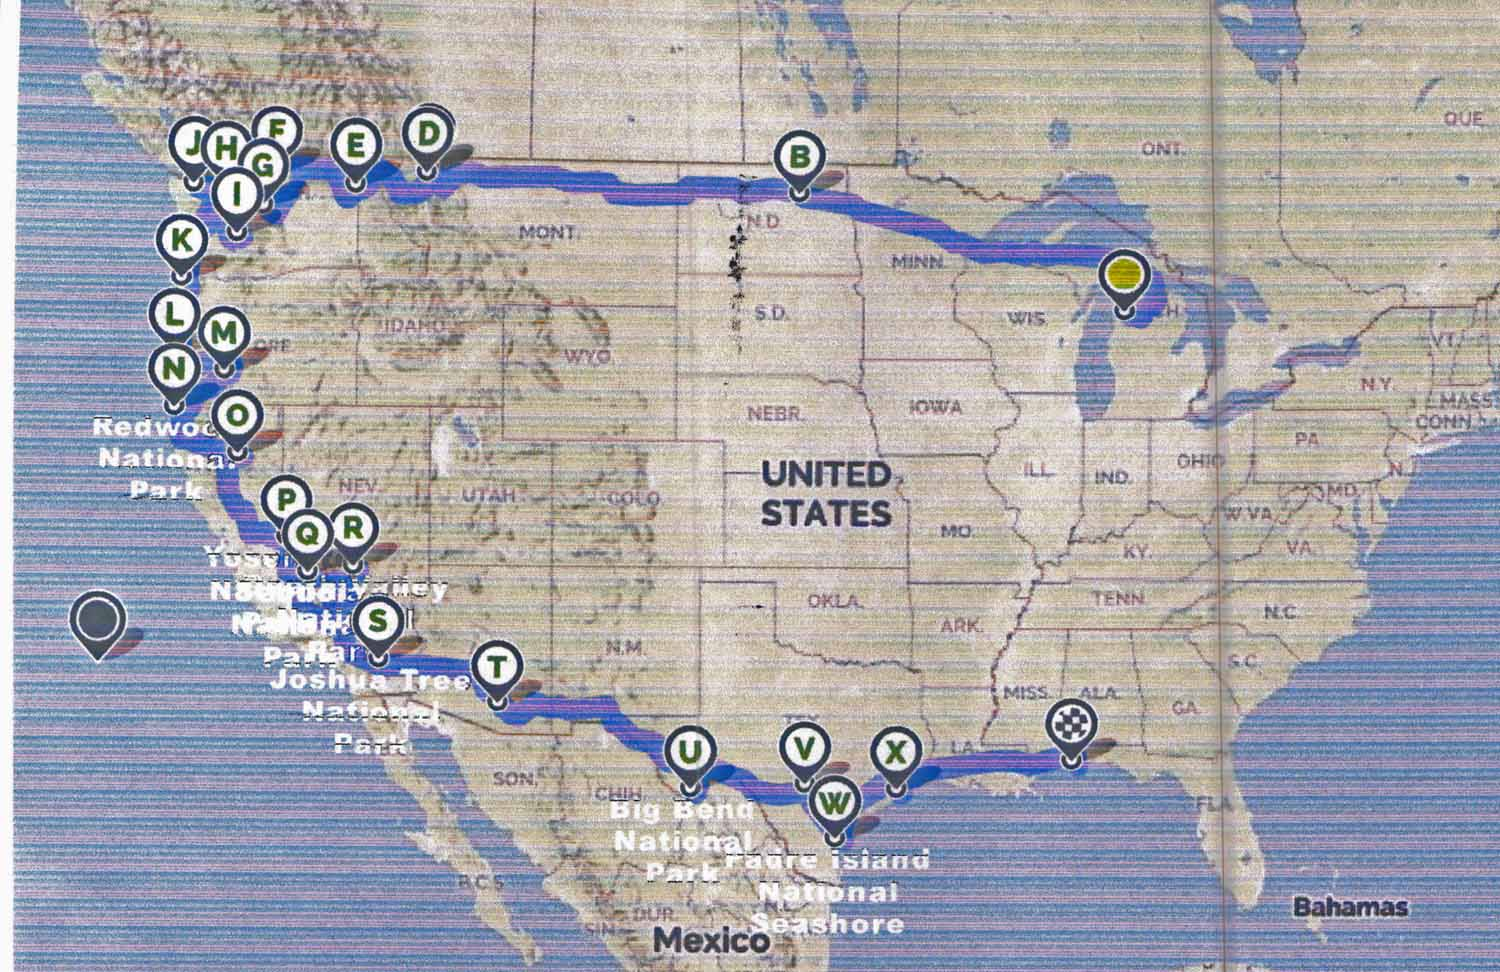 Summer 2016 travel route from Michigan to Seattle winding out way down the coast to California then Arizona all the way to Padre Islands in Texas then back on to Gulf Shores